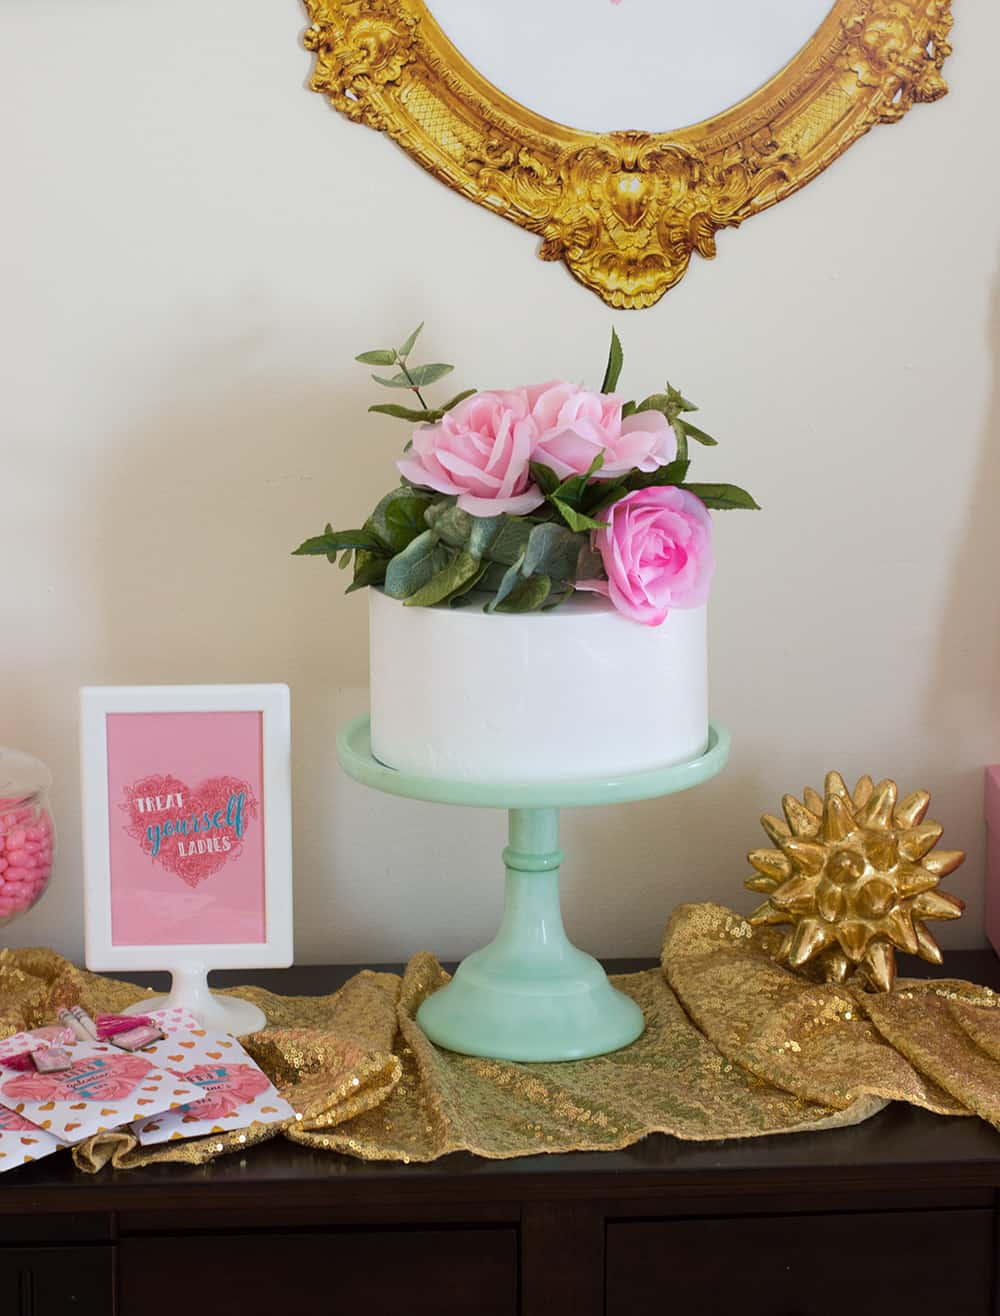 White cake topped with DIY faux flower cake topper on mint stand